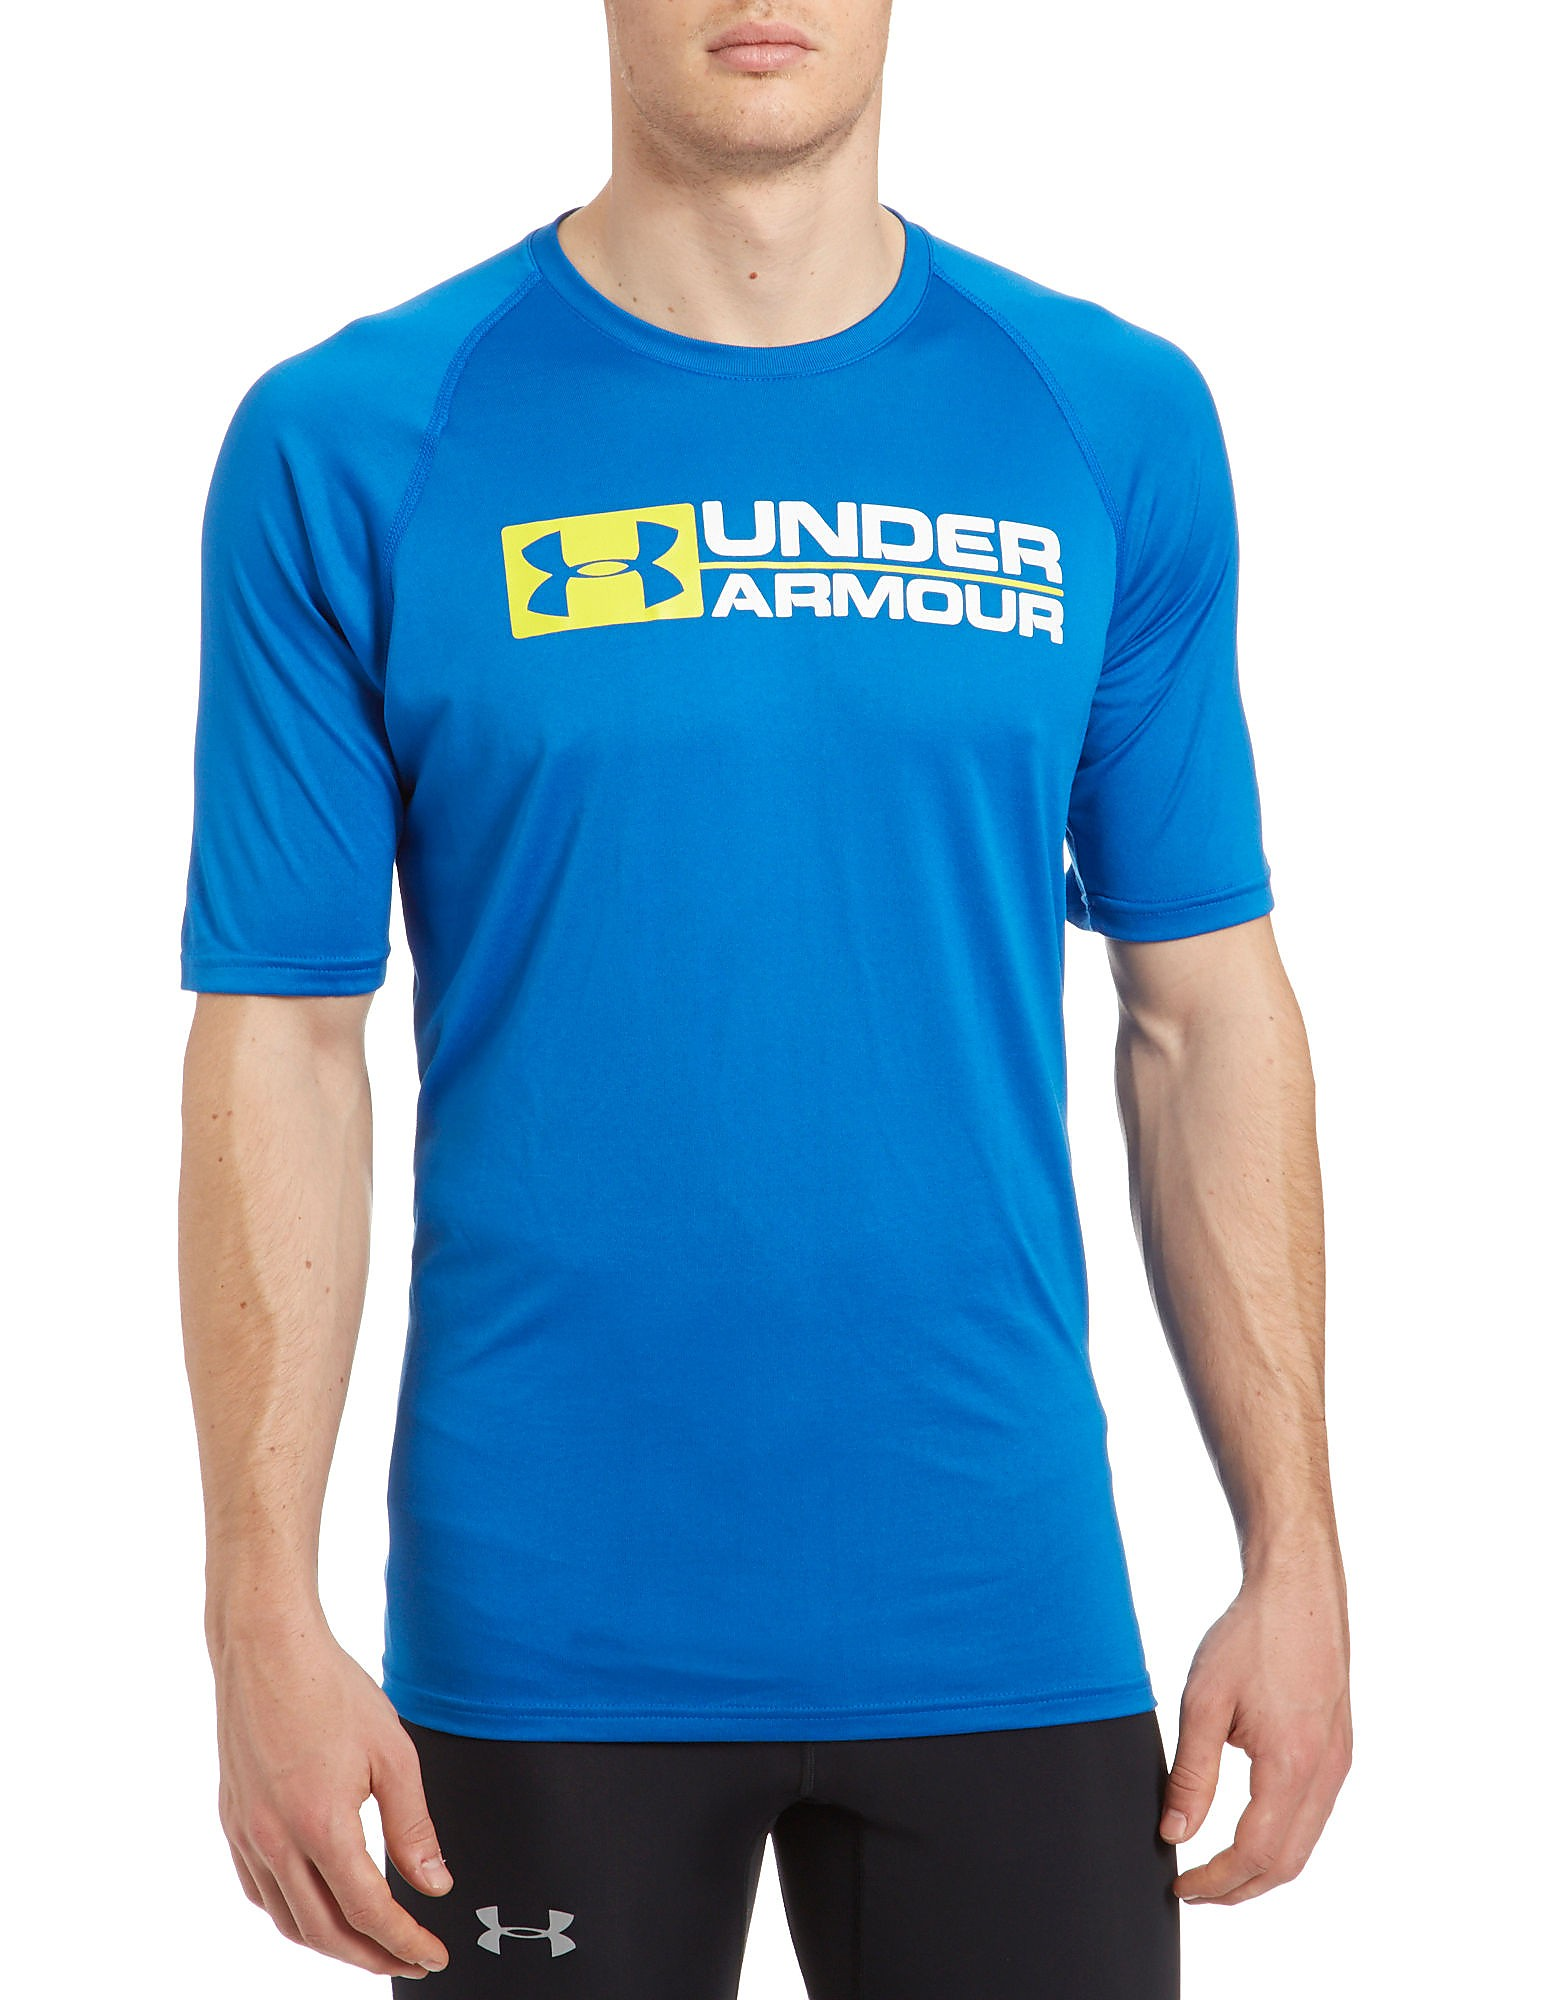 Under Armour Lockdown T-Shirt product image